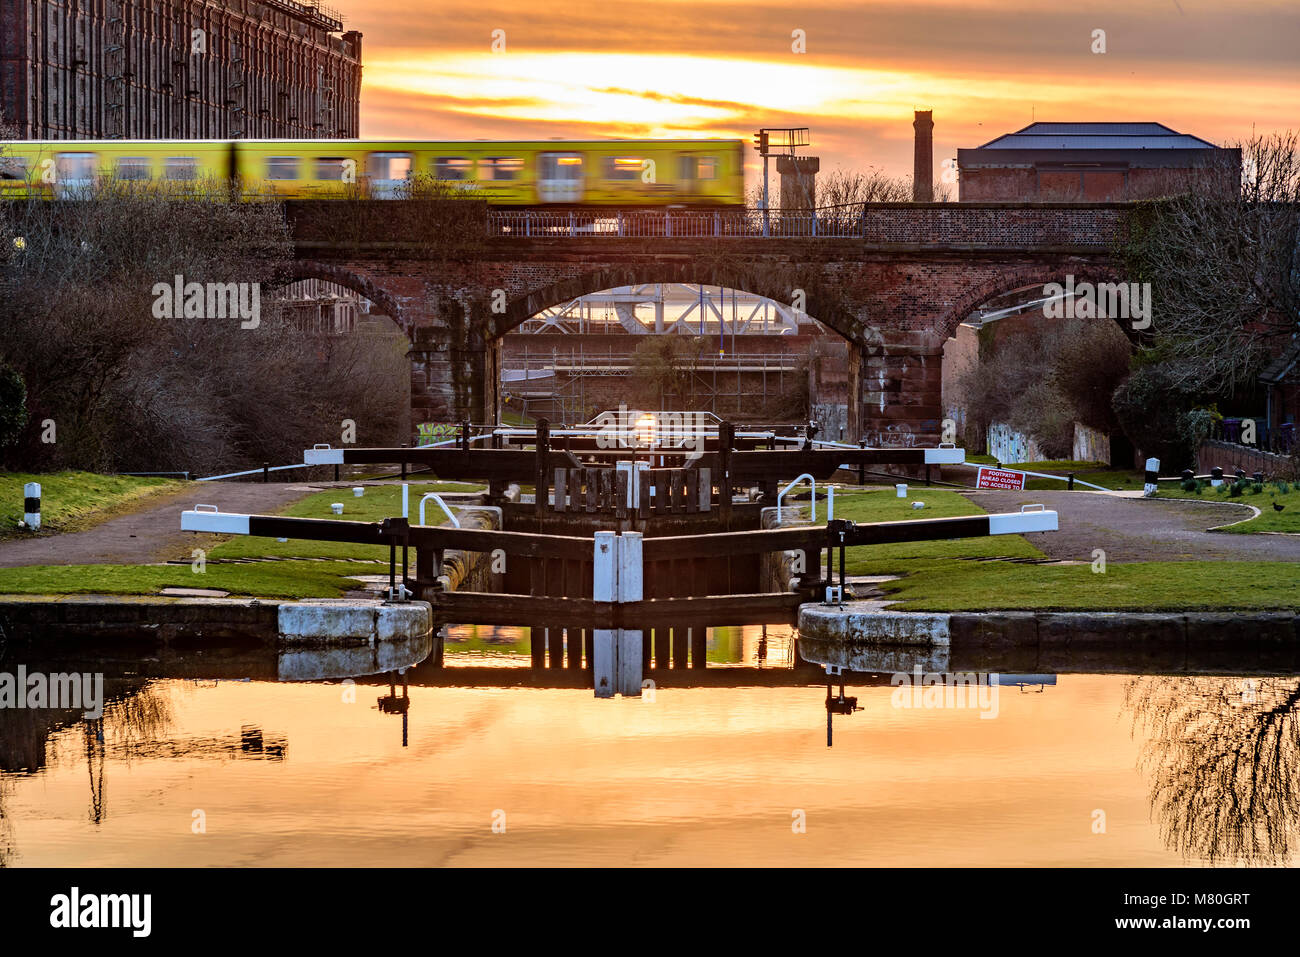 Merseyrail Electric train passing over the Leeds Liverpool canal locks at Stanley Dock. Evening light. Sunset Stock Photo